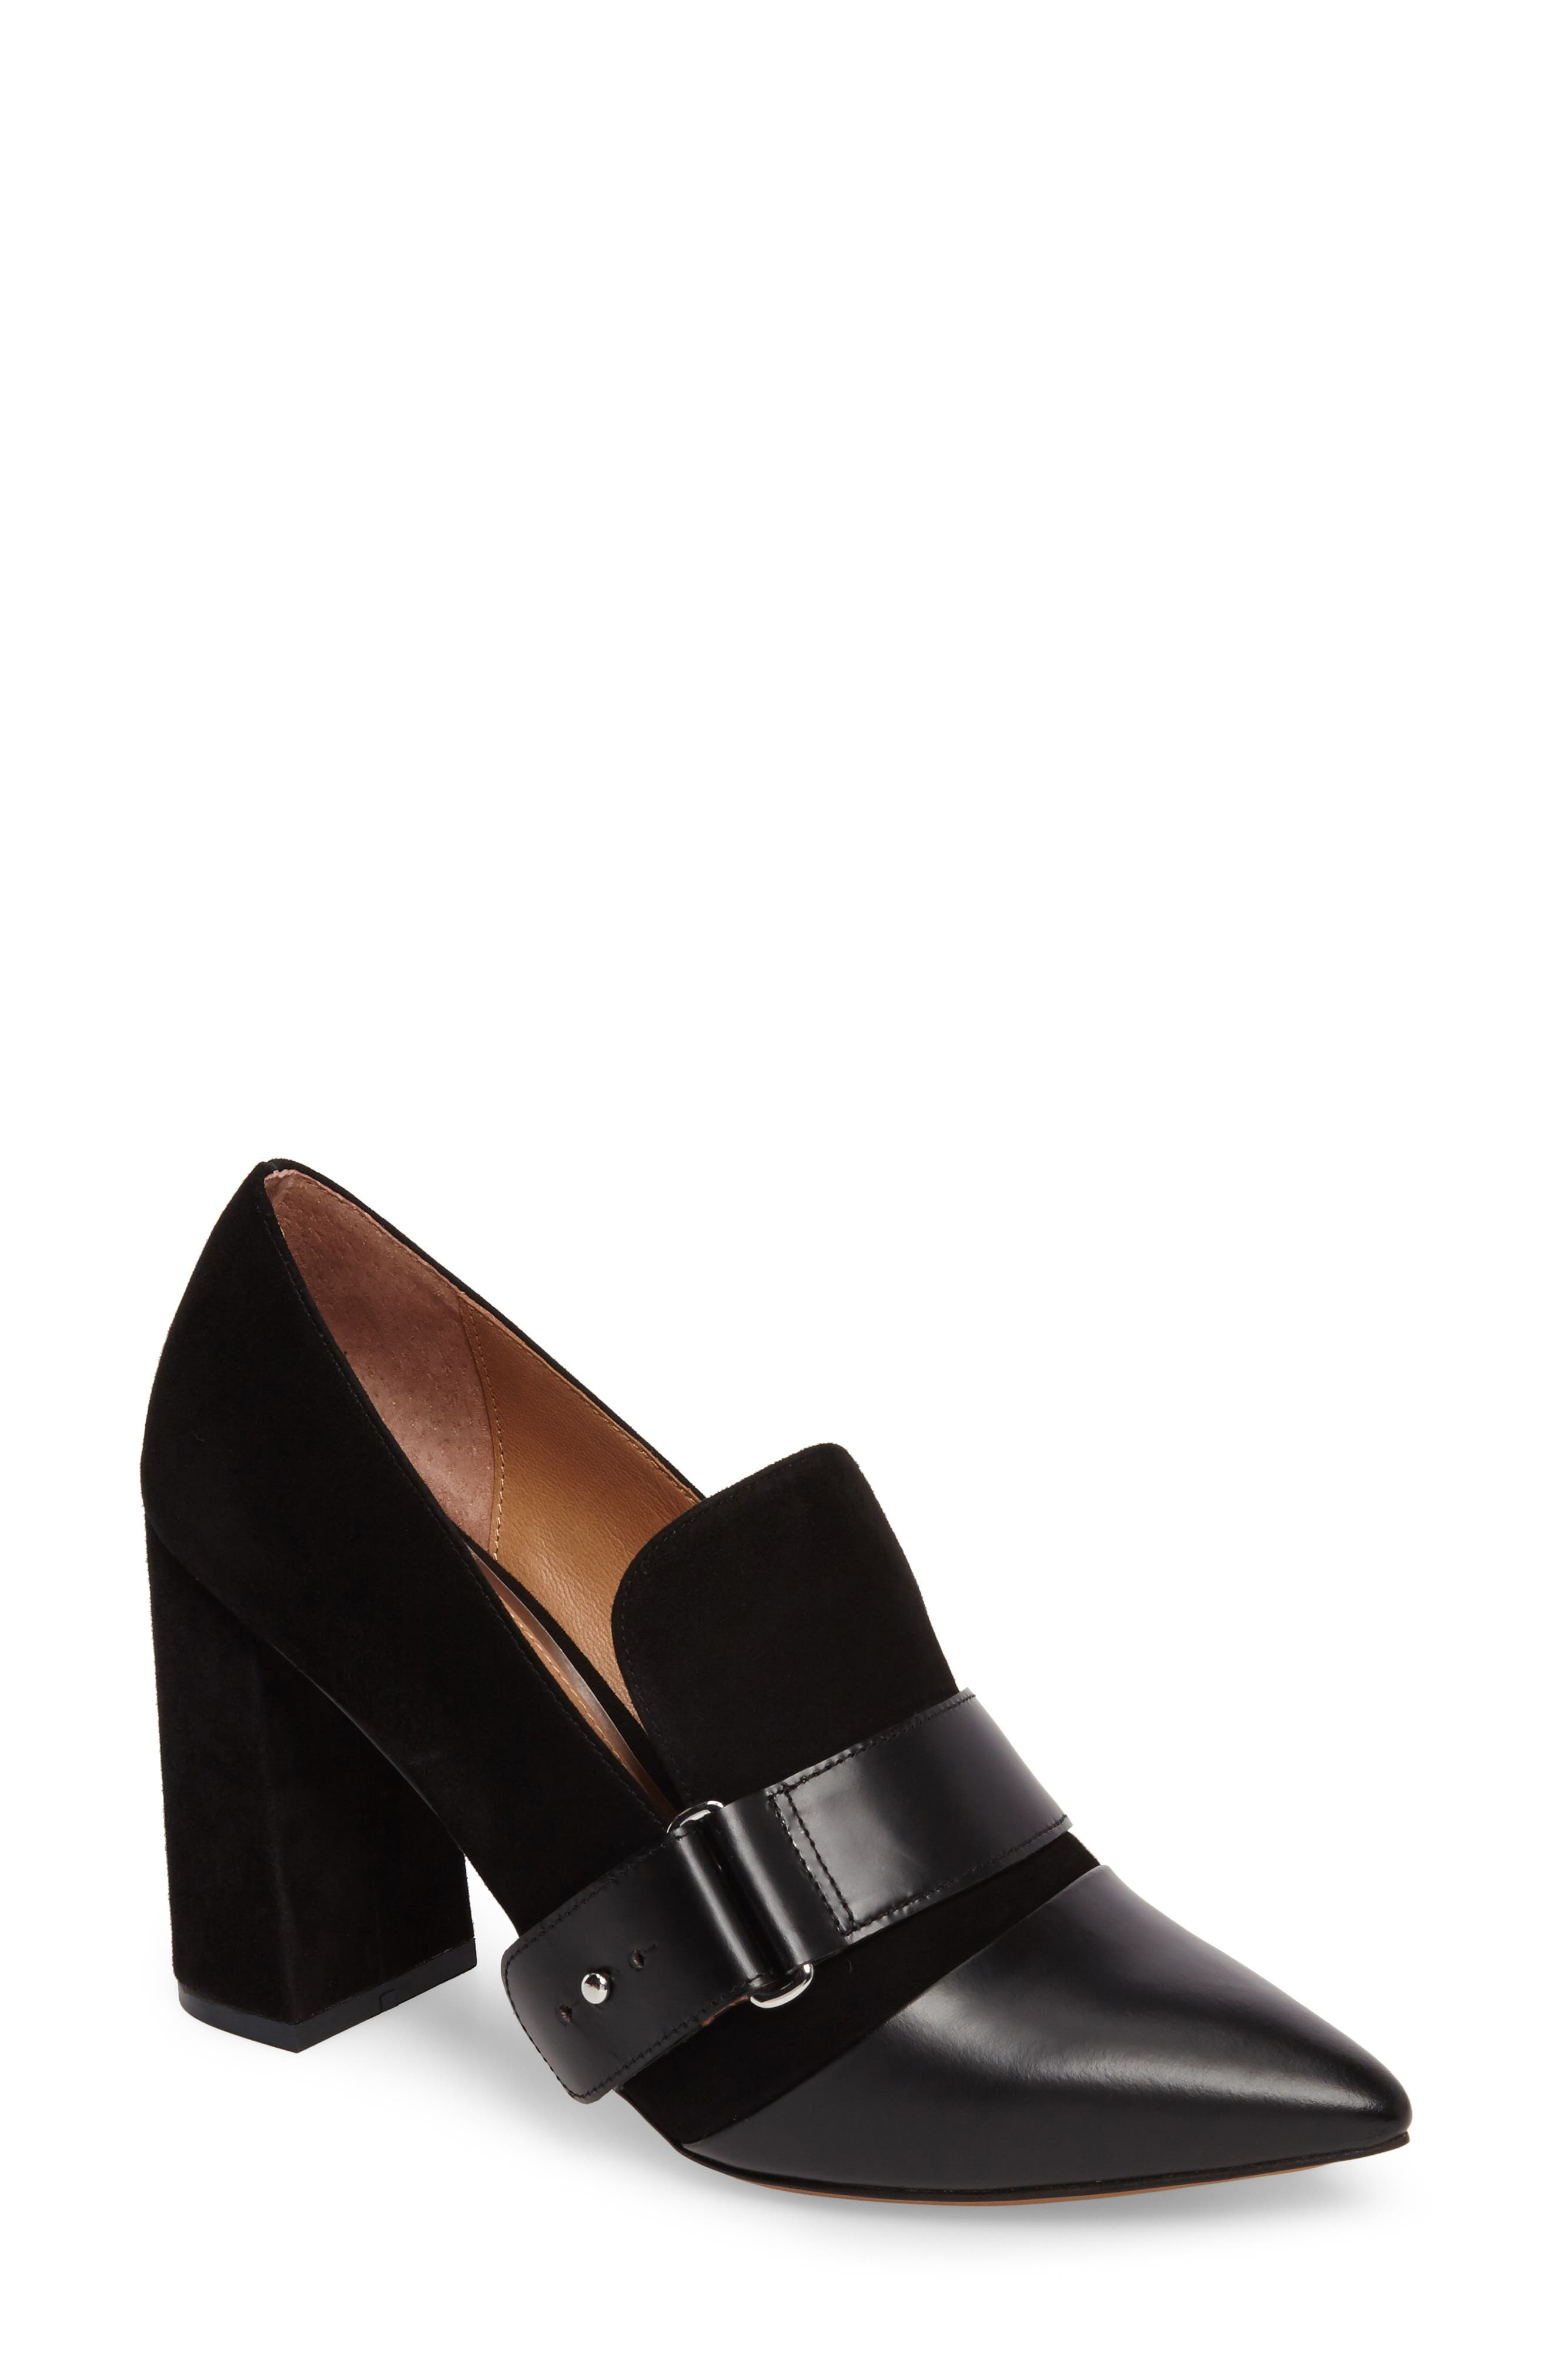 Casidy Buckle Pump,                             Main thumbnail 1, color,                             001